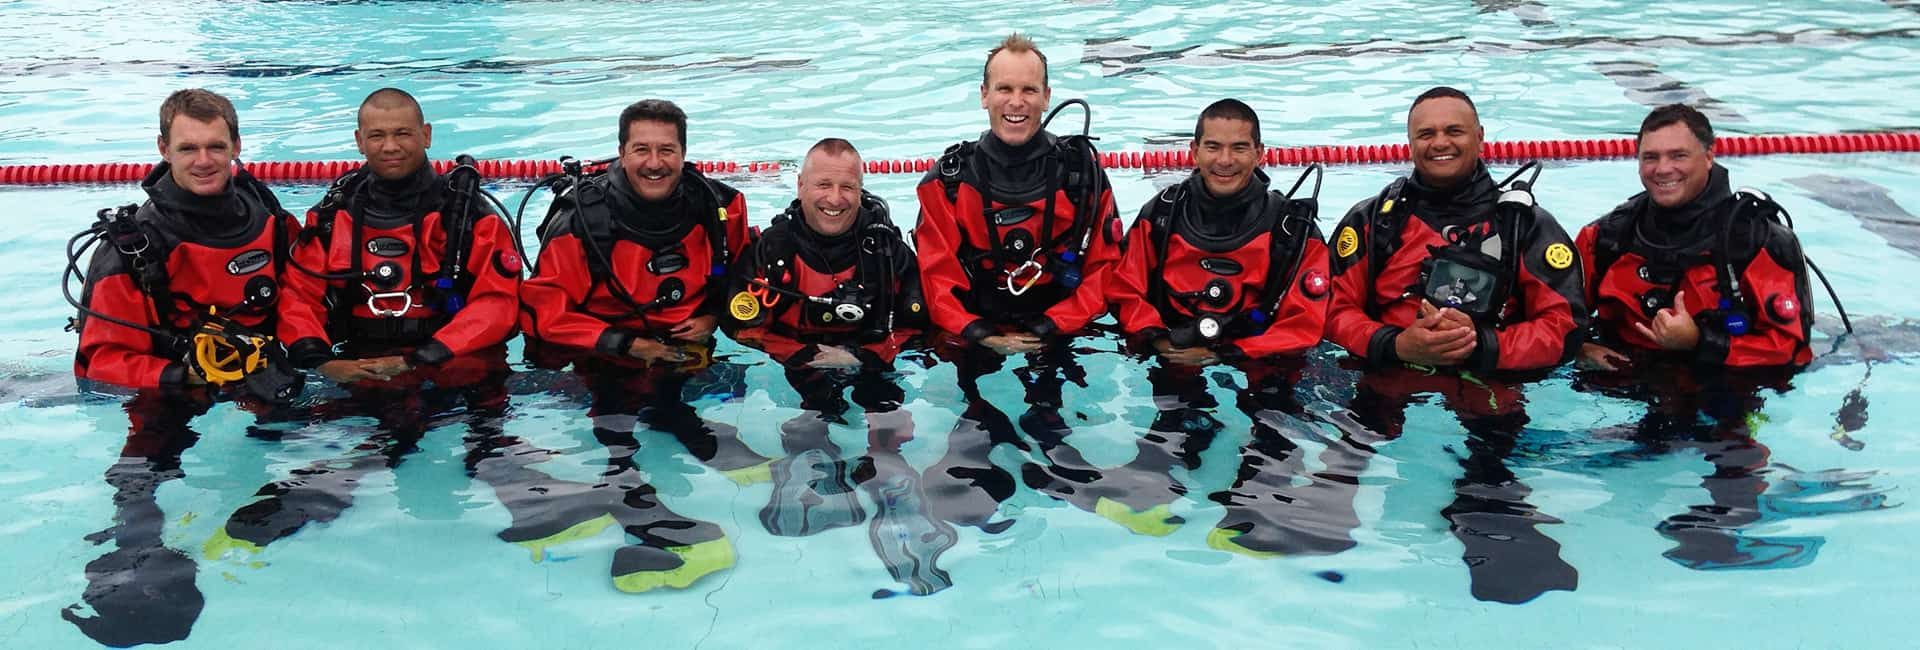 dive rescue training forms, Dive Rescue Training Forms